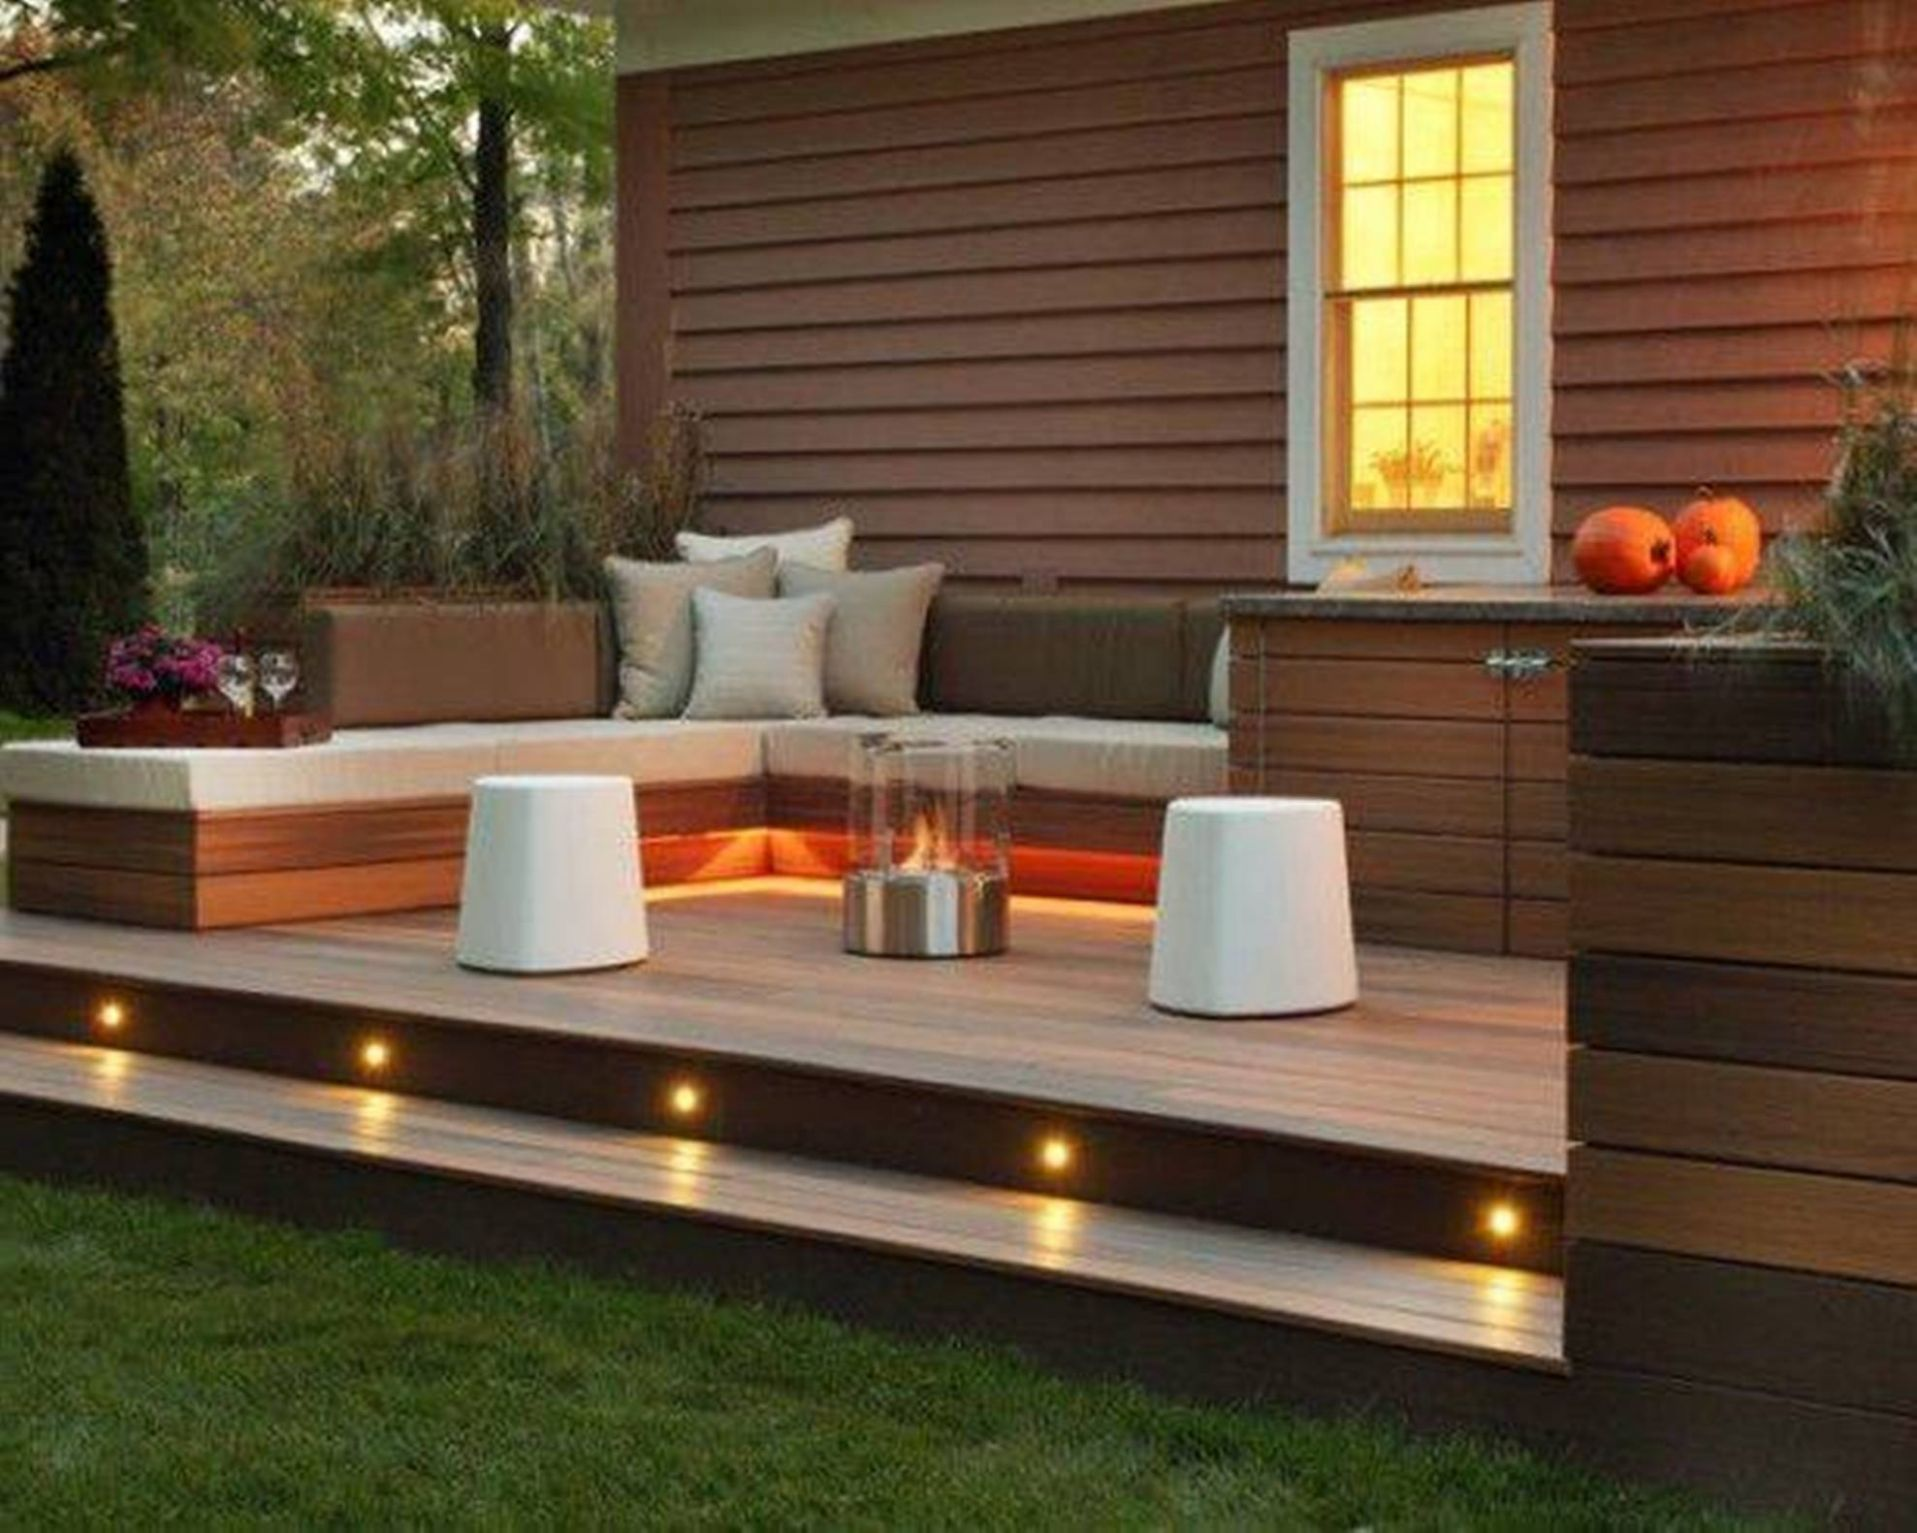 Deck Designs Home Depot Design Ideas With Picture Of Beautiful ...